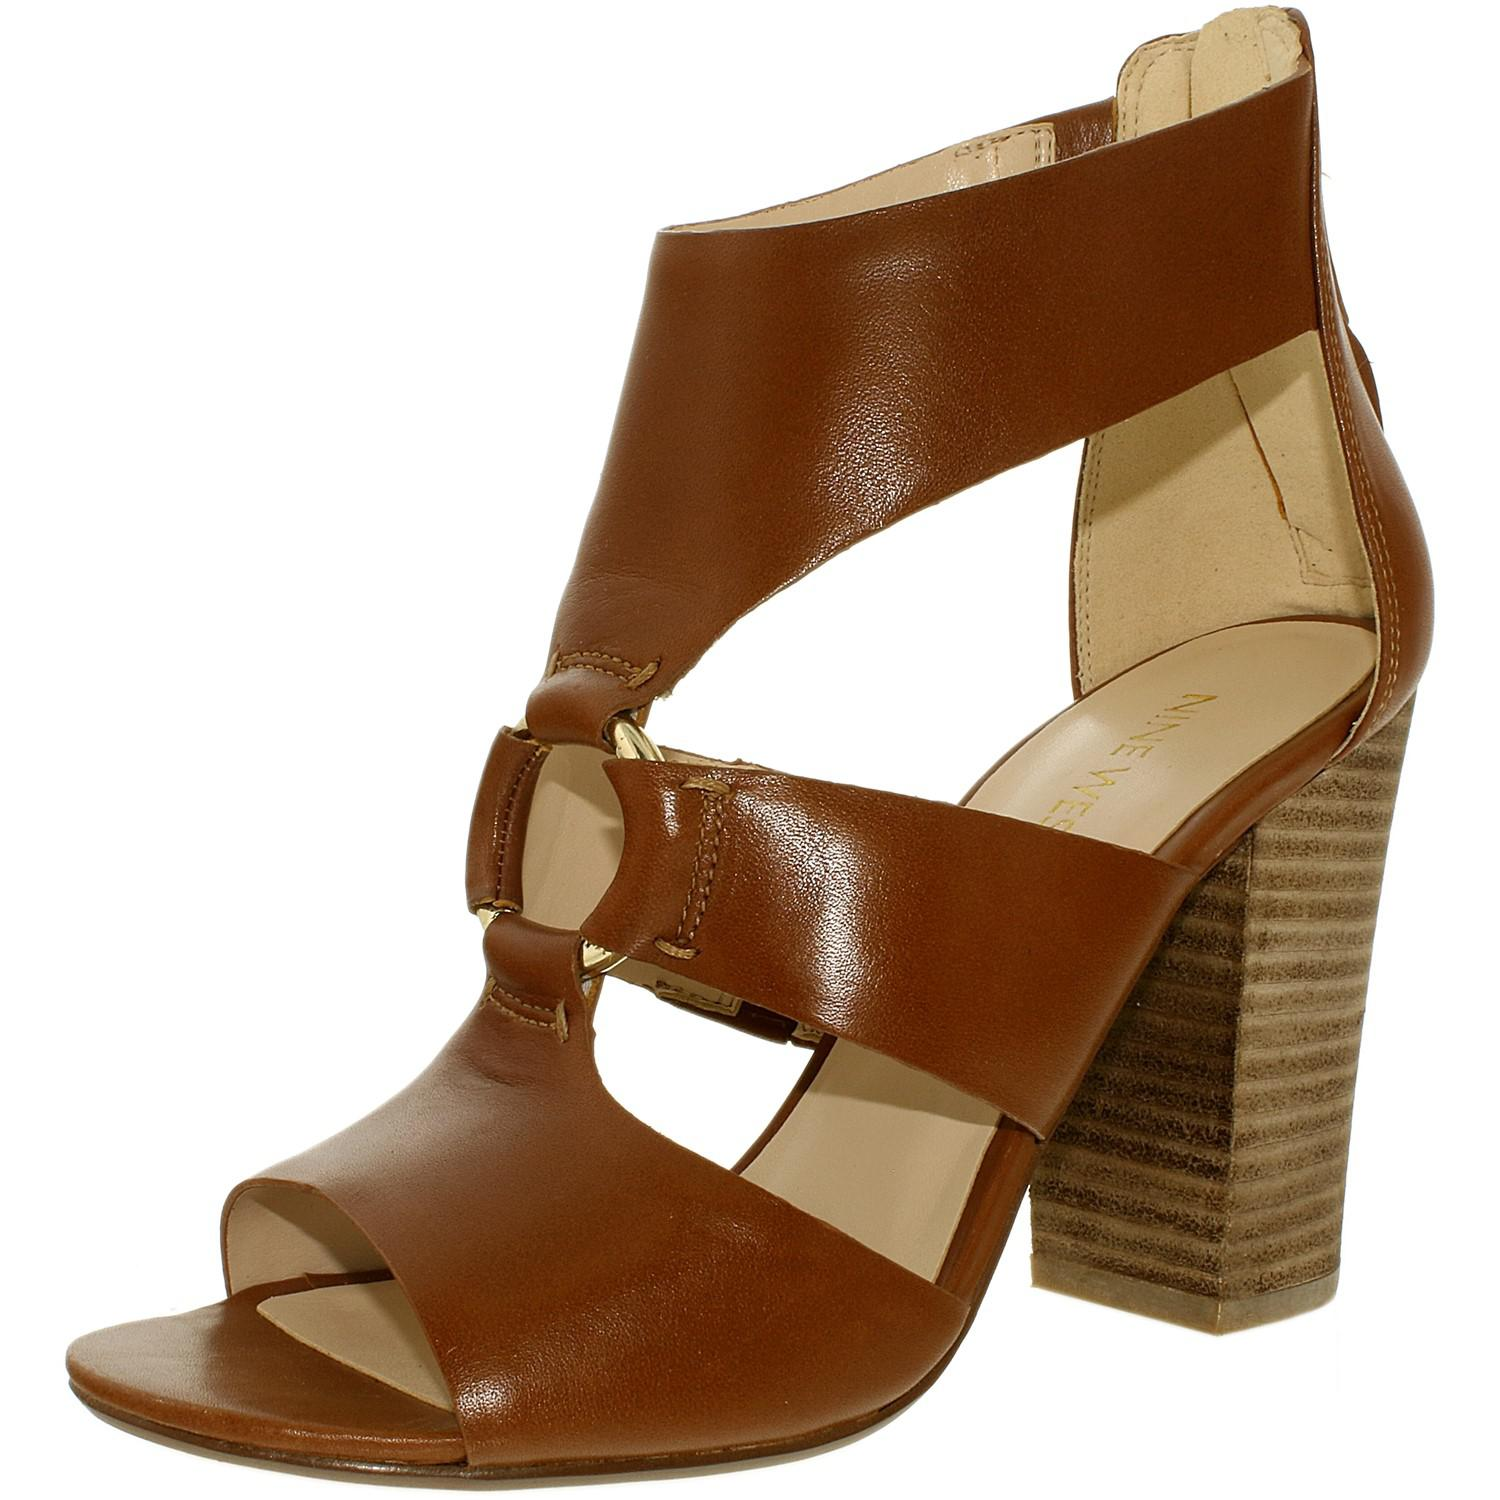 Nine West. Women's Brown Roamah Leather Cognac Ankle-high Leather Sandal